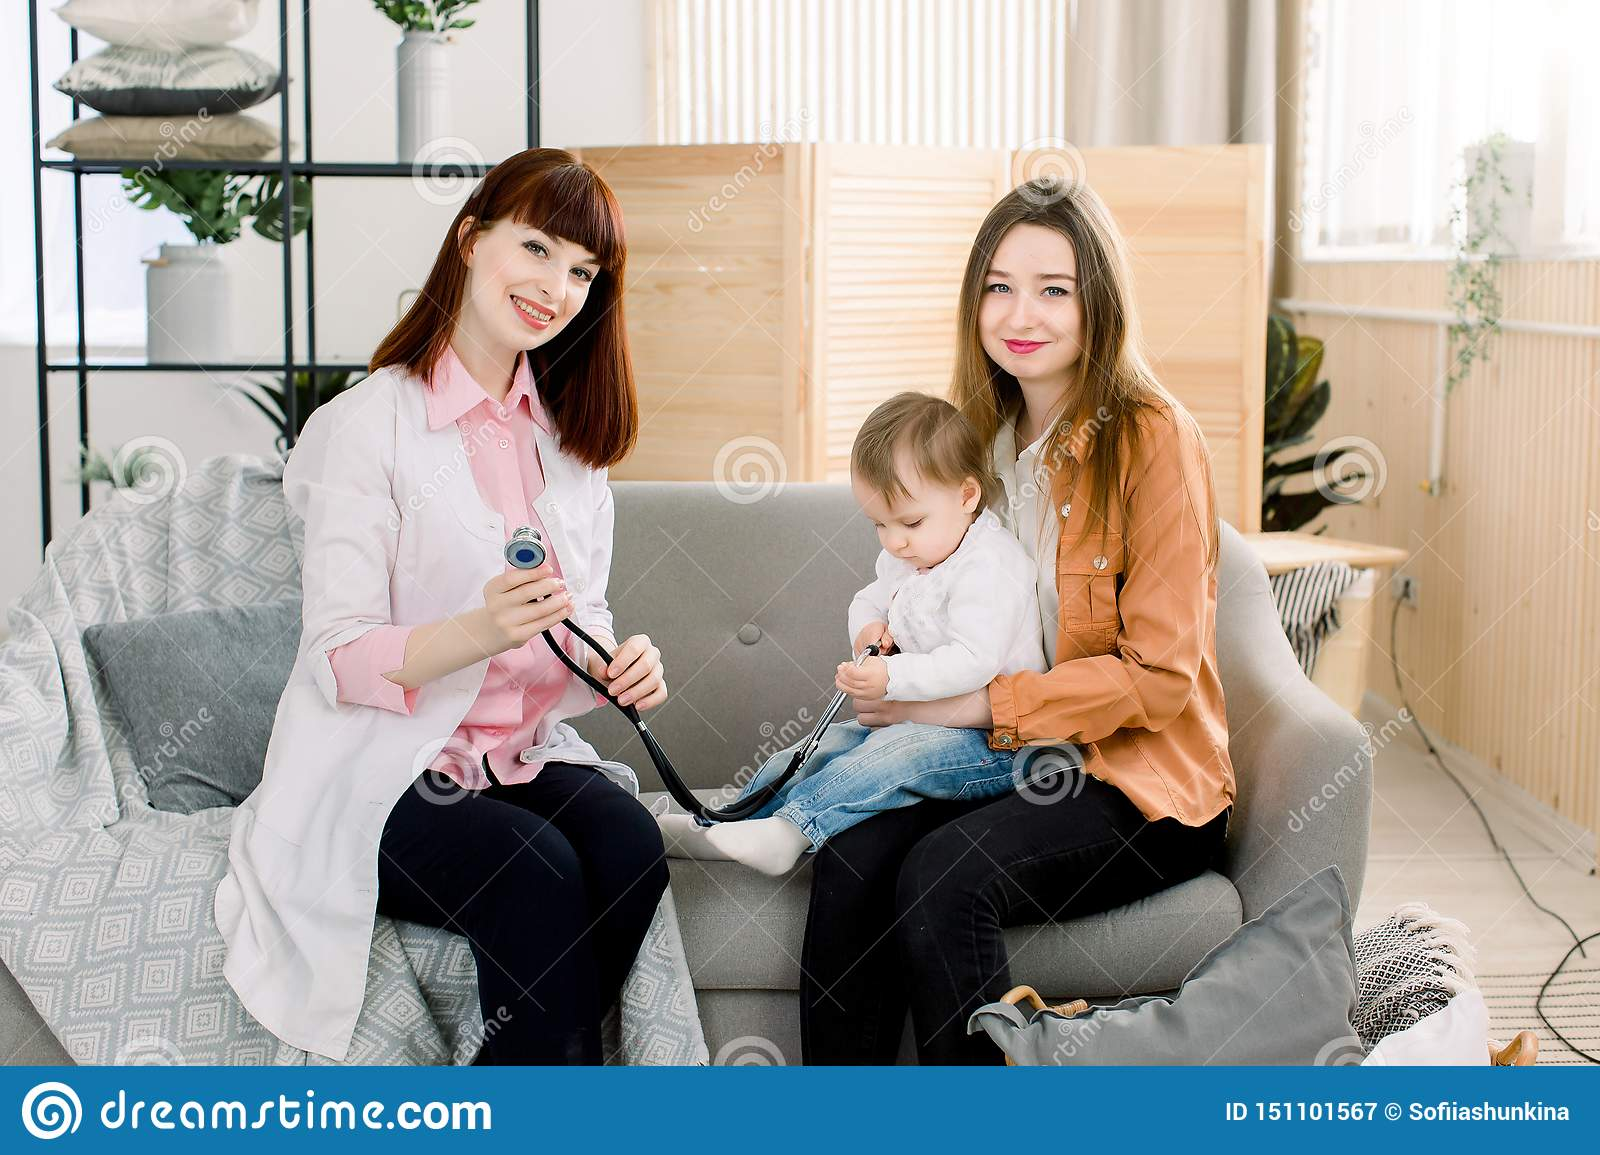 Medicine, healthcare, pediatry and people concept - woman with baby and young woman doctor at clinic or at home